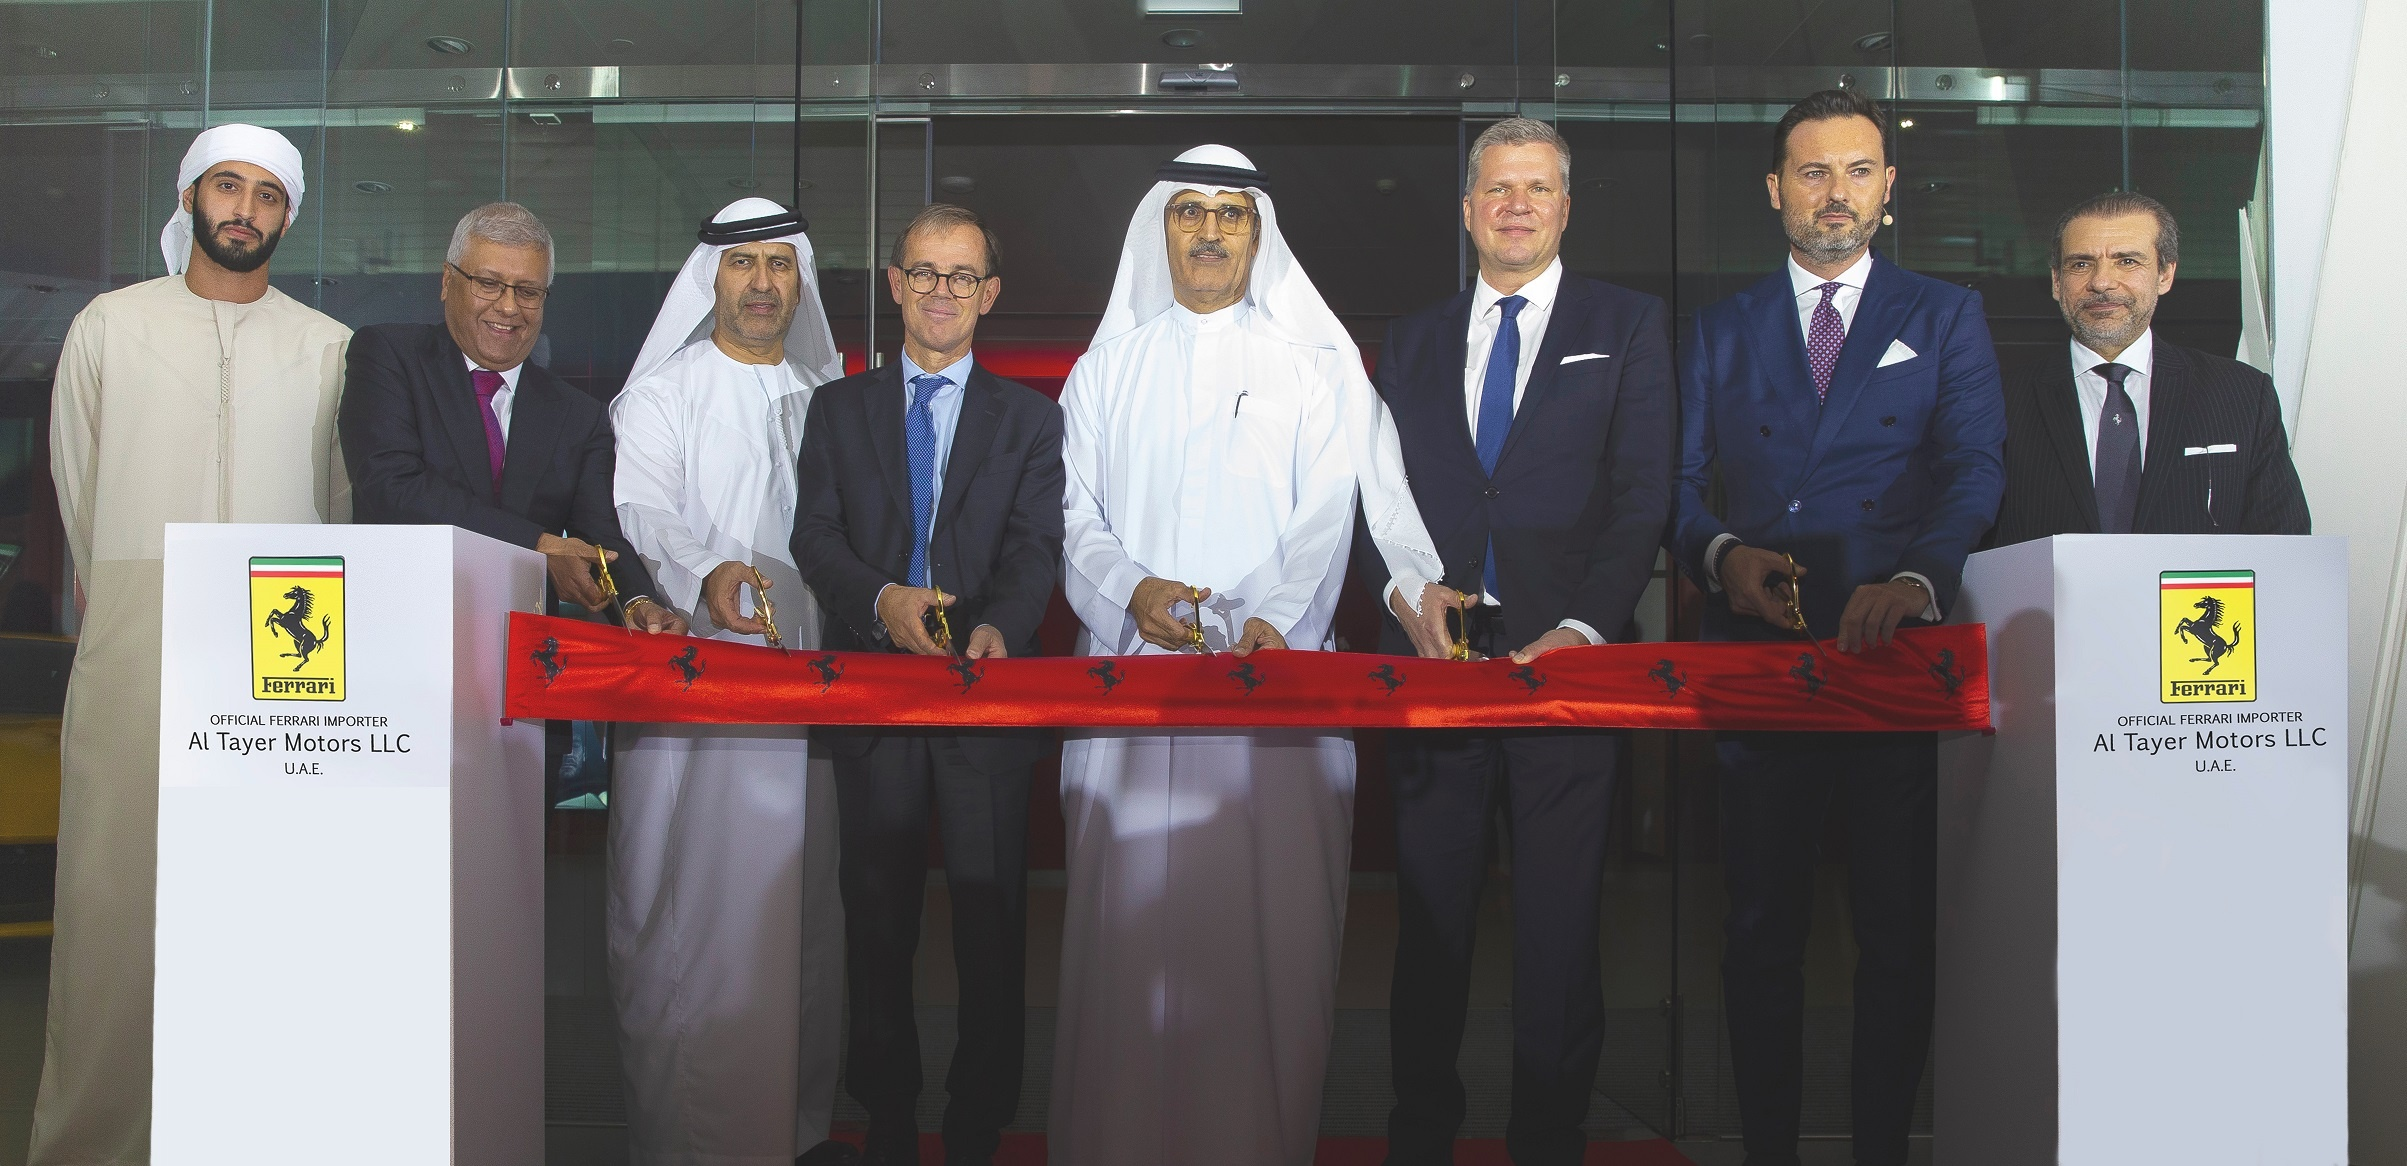 Al Tayer Motors Opens State-of-the-Art Ferrari Showroom in Dubai